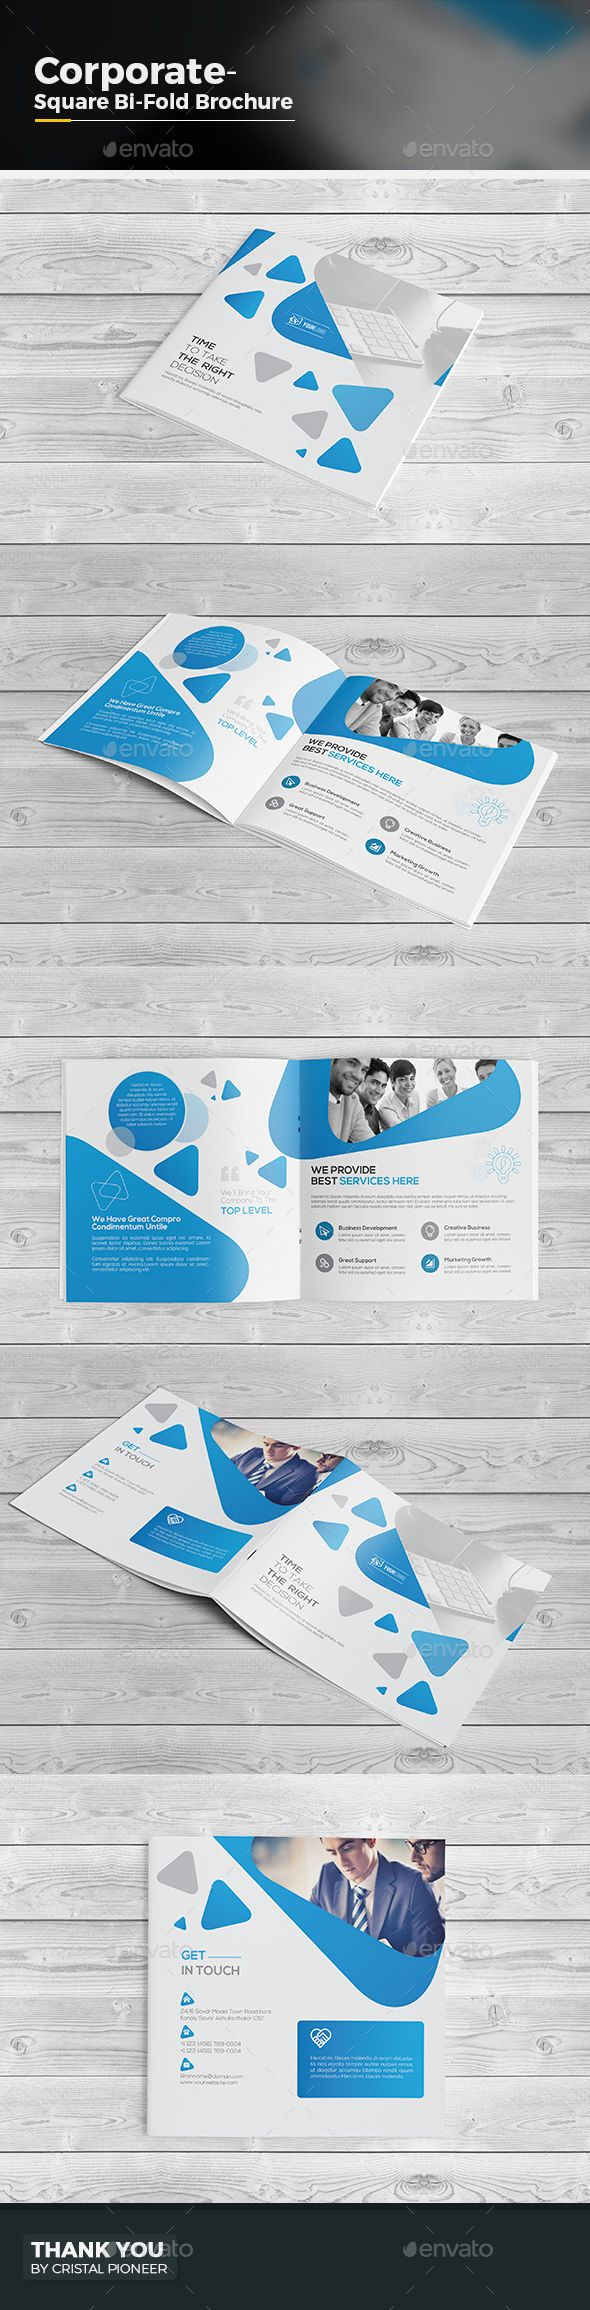 bi fold brochure template illustrator - 1000 images about brochure templates on pinterest